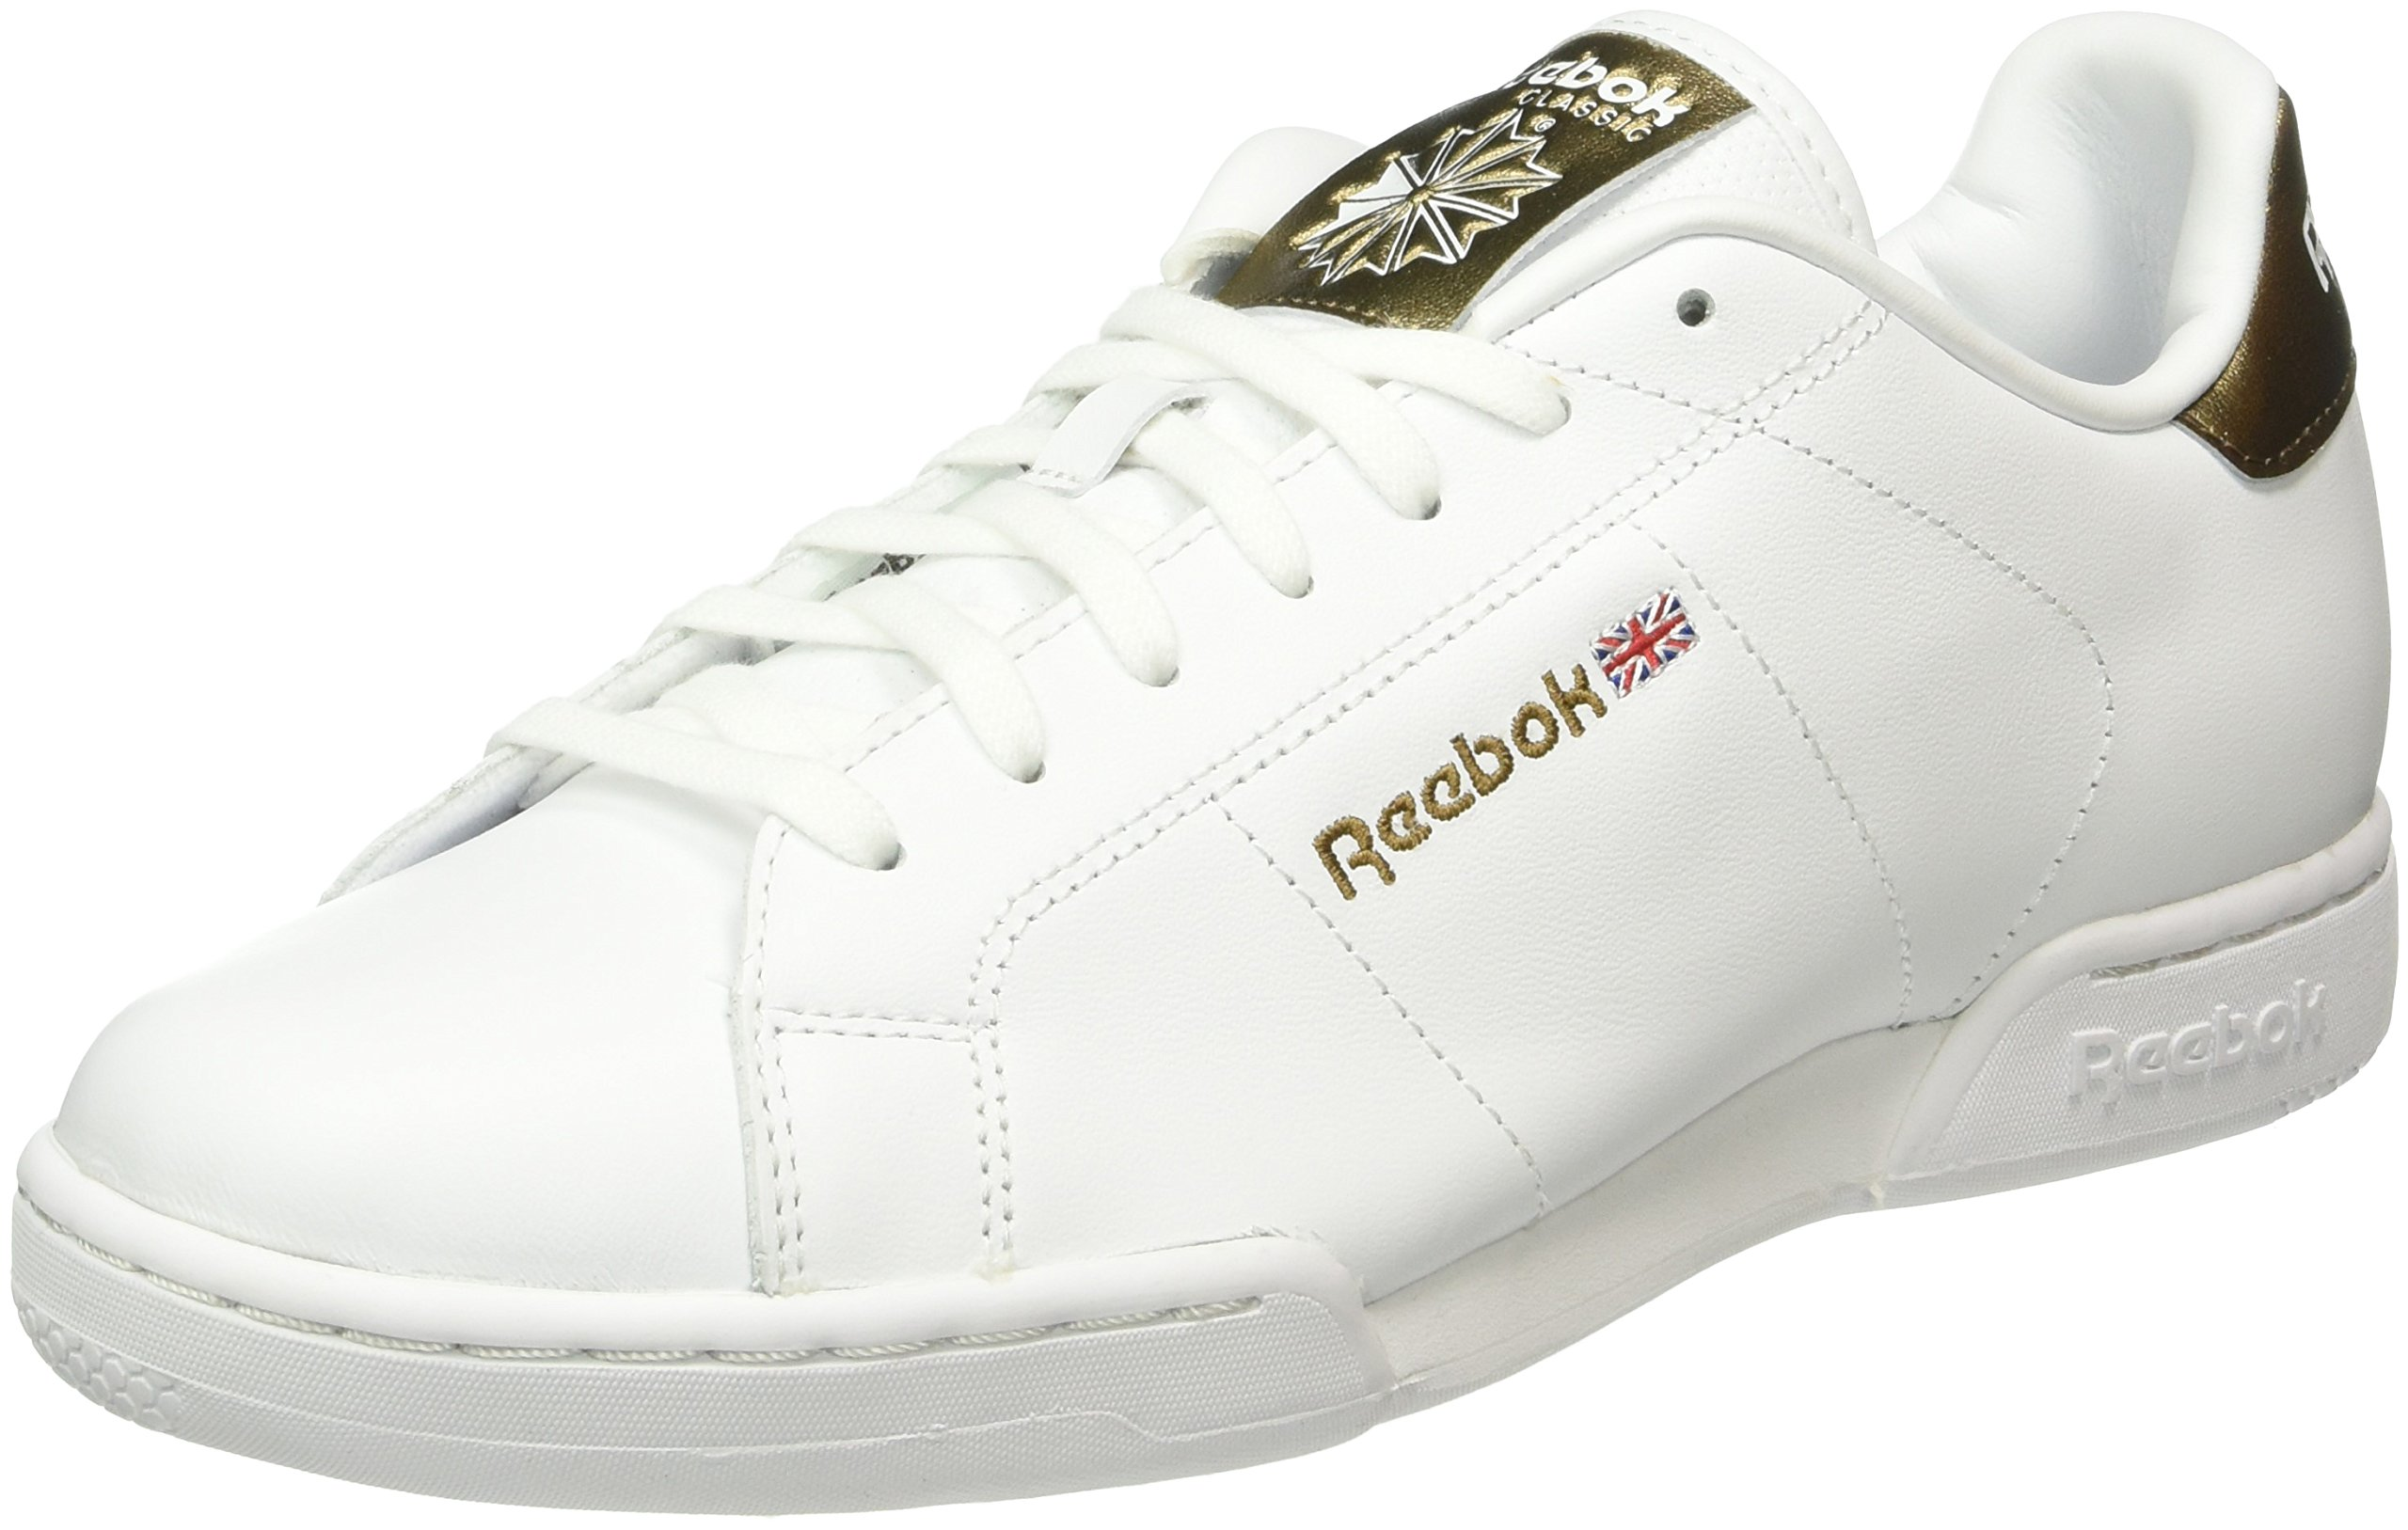 Basses HommeBlancwhite Copper36 antique Ii MetallicsSneakers Eu Reebok Npc wOkiuTXZP